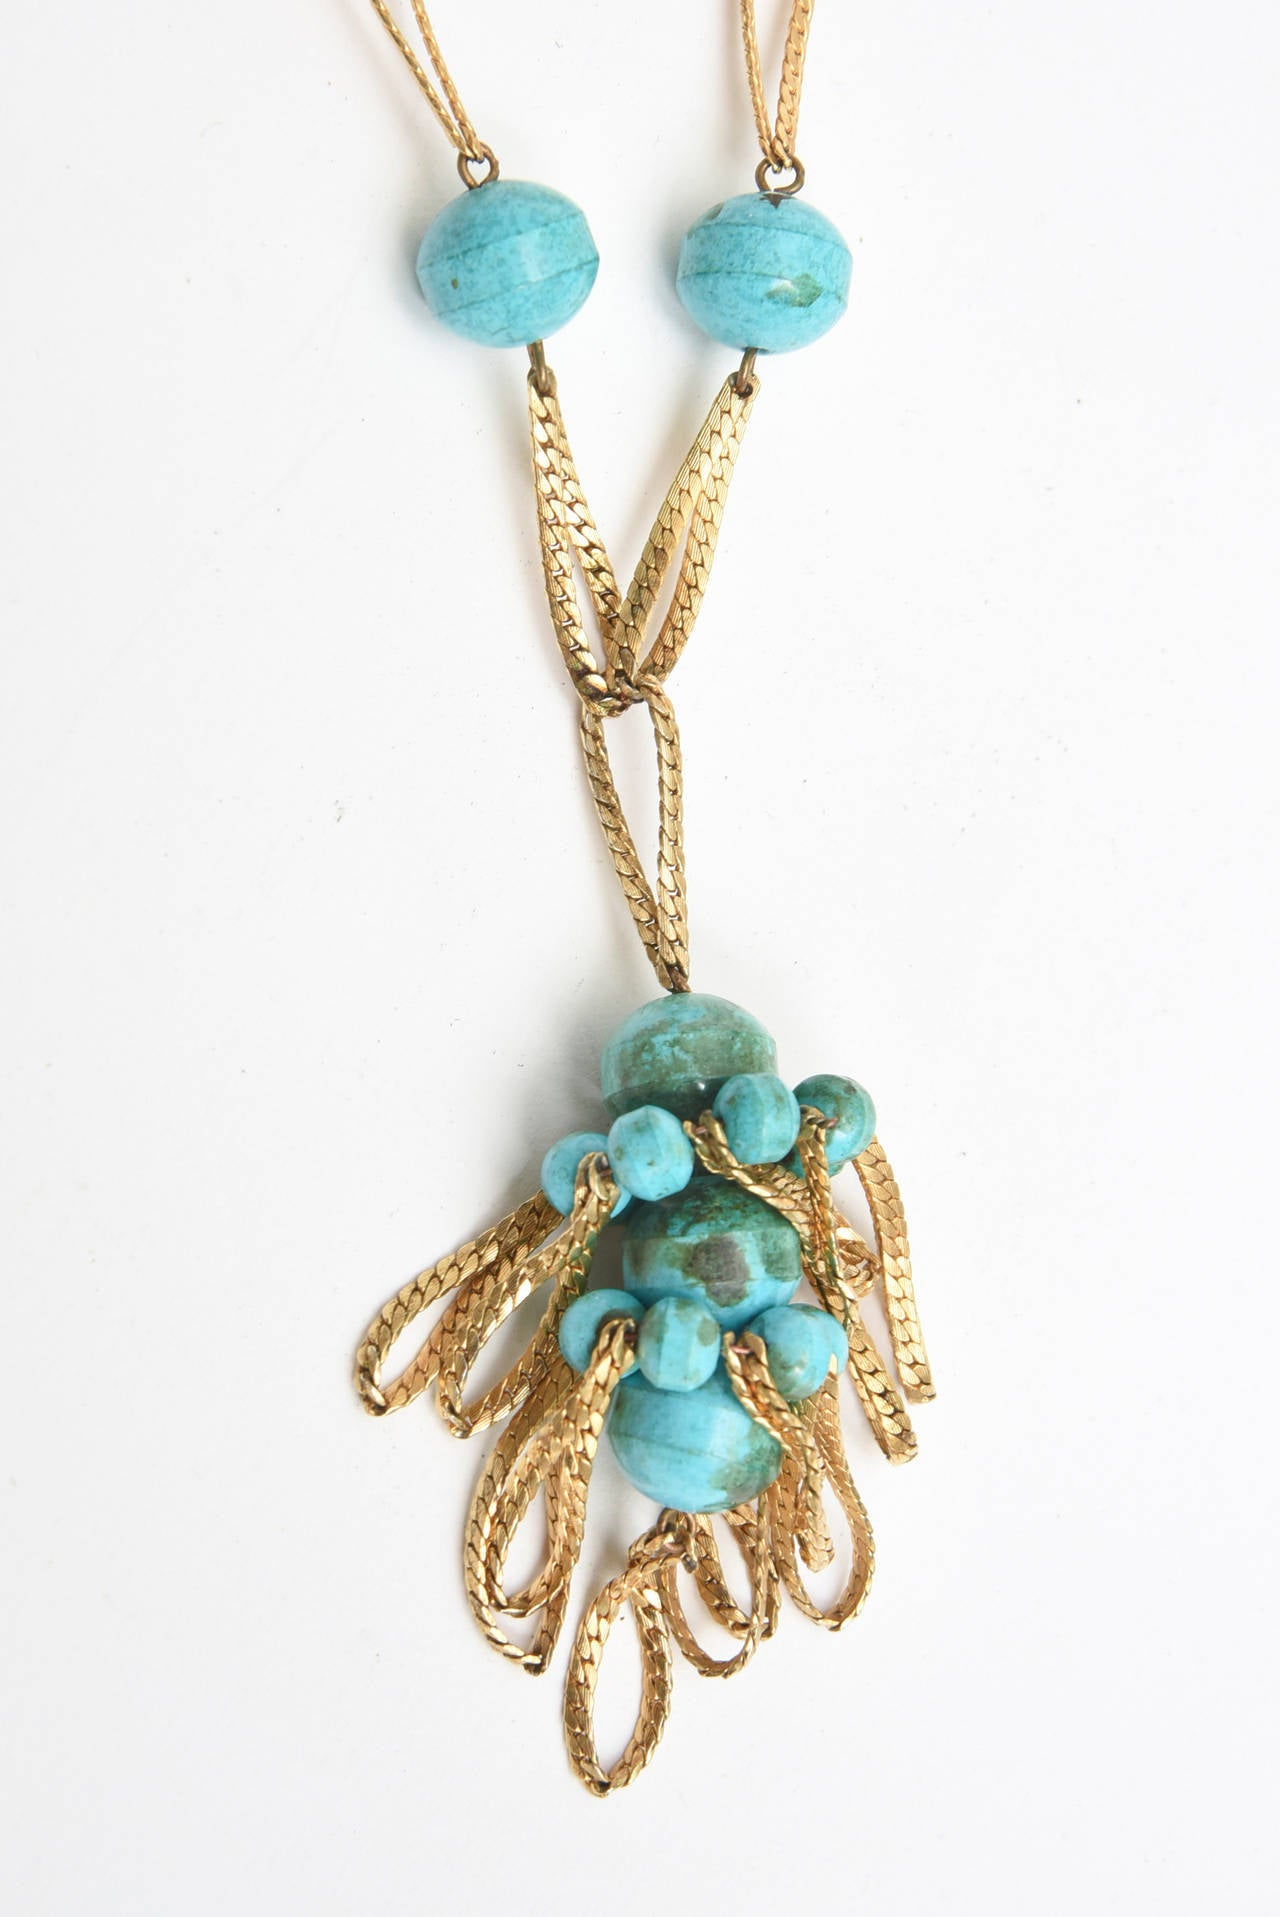 This gorgeous and versatile vintage long necklace is signed Hattie Carnegie. It is from the 70's. Turquoise and braided gold tone tassled necklace is so it now! The dangling braided gold parts interspersed with turquoise clusters is hip and so